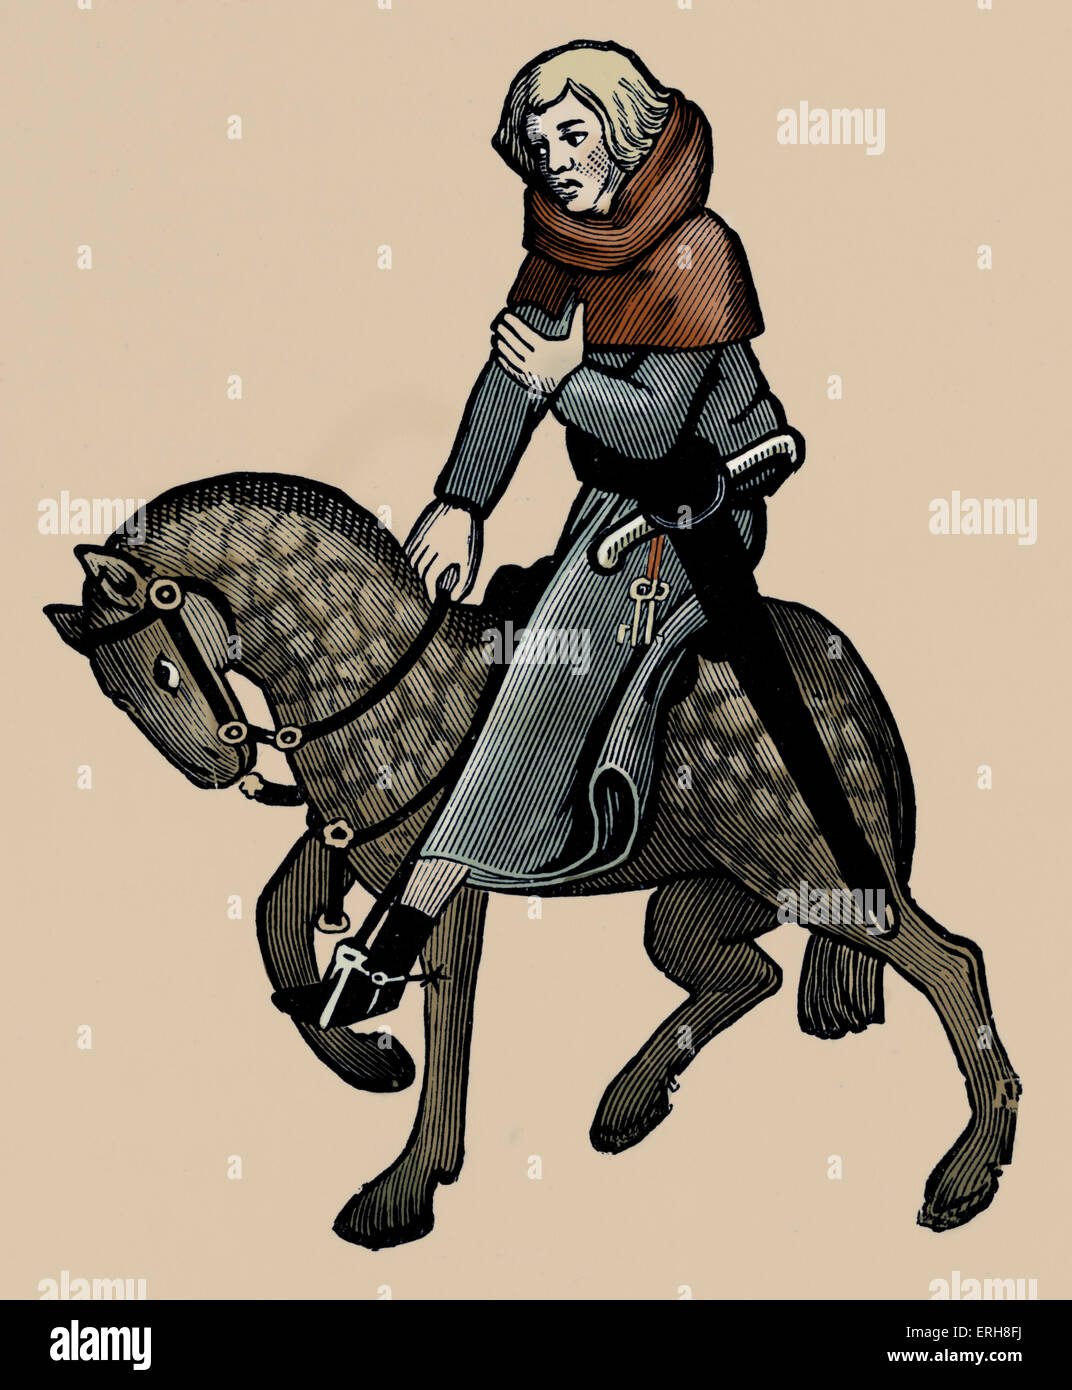 Geoffrey Chaucer ' s Canterbury Tales - The Reeve on horseback. English poet, c. 1343-1400. Ellesemere manuscript - Stock Image